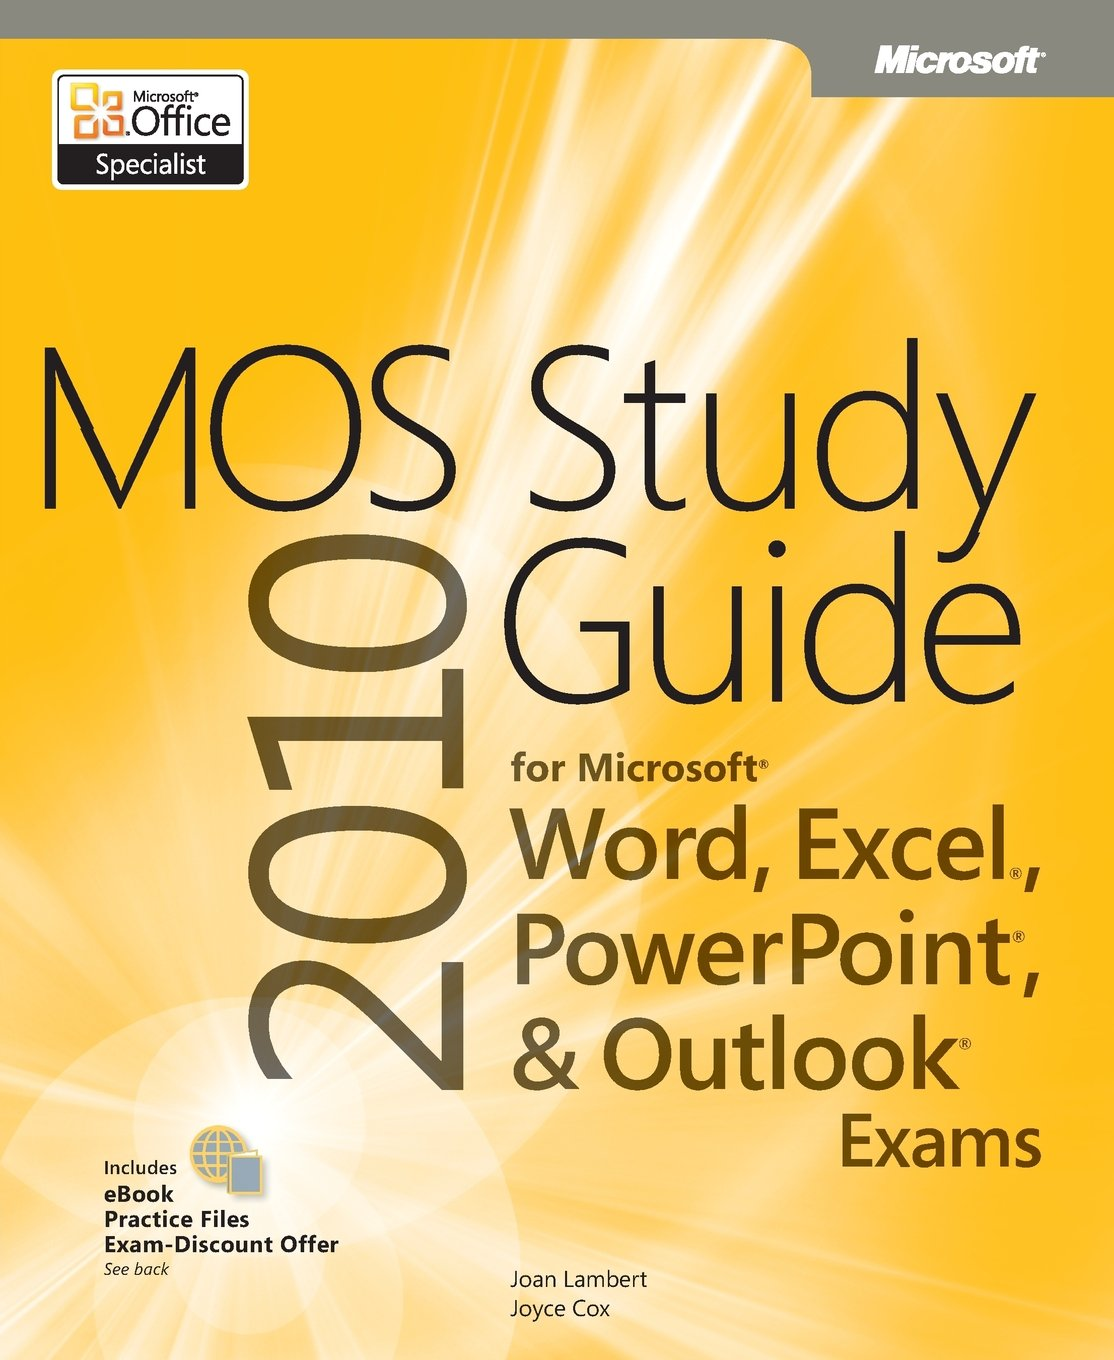 Mos 2010 study guide for microsoft word excel powerpoint and mos 2010 study guide for microsoft word excel powerpoint and outlook exams mos study guide amazon joan lambert 0783324831665 books xflitez Gallery